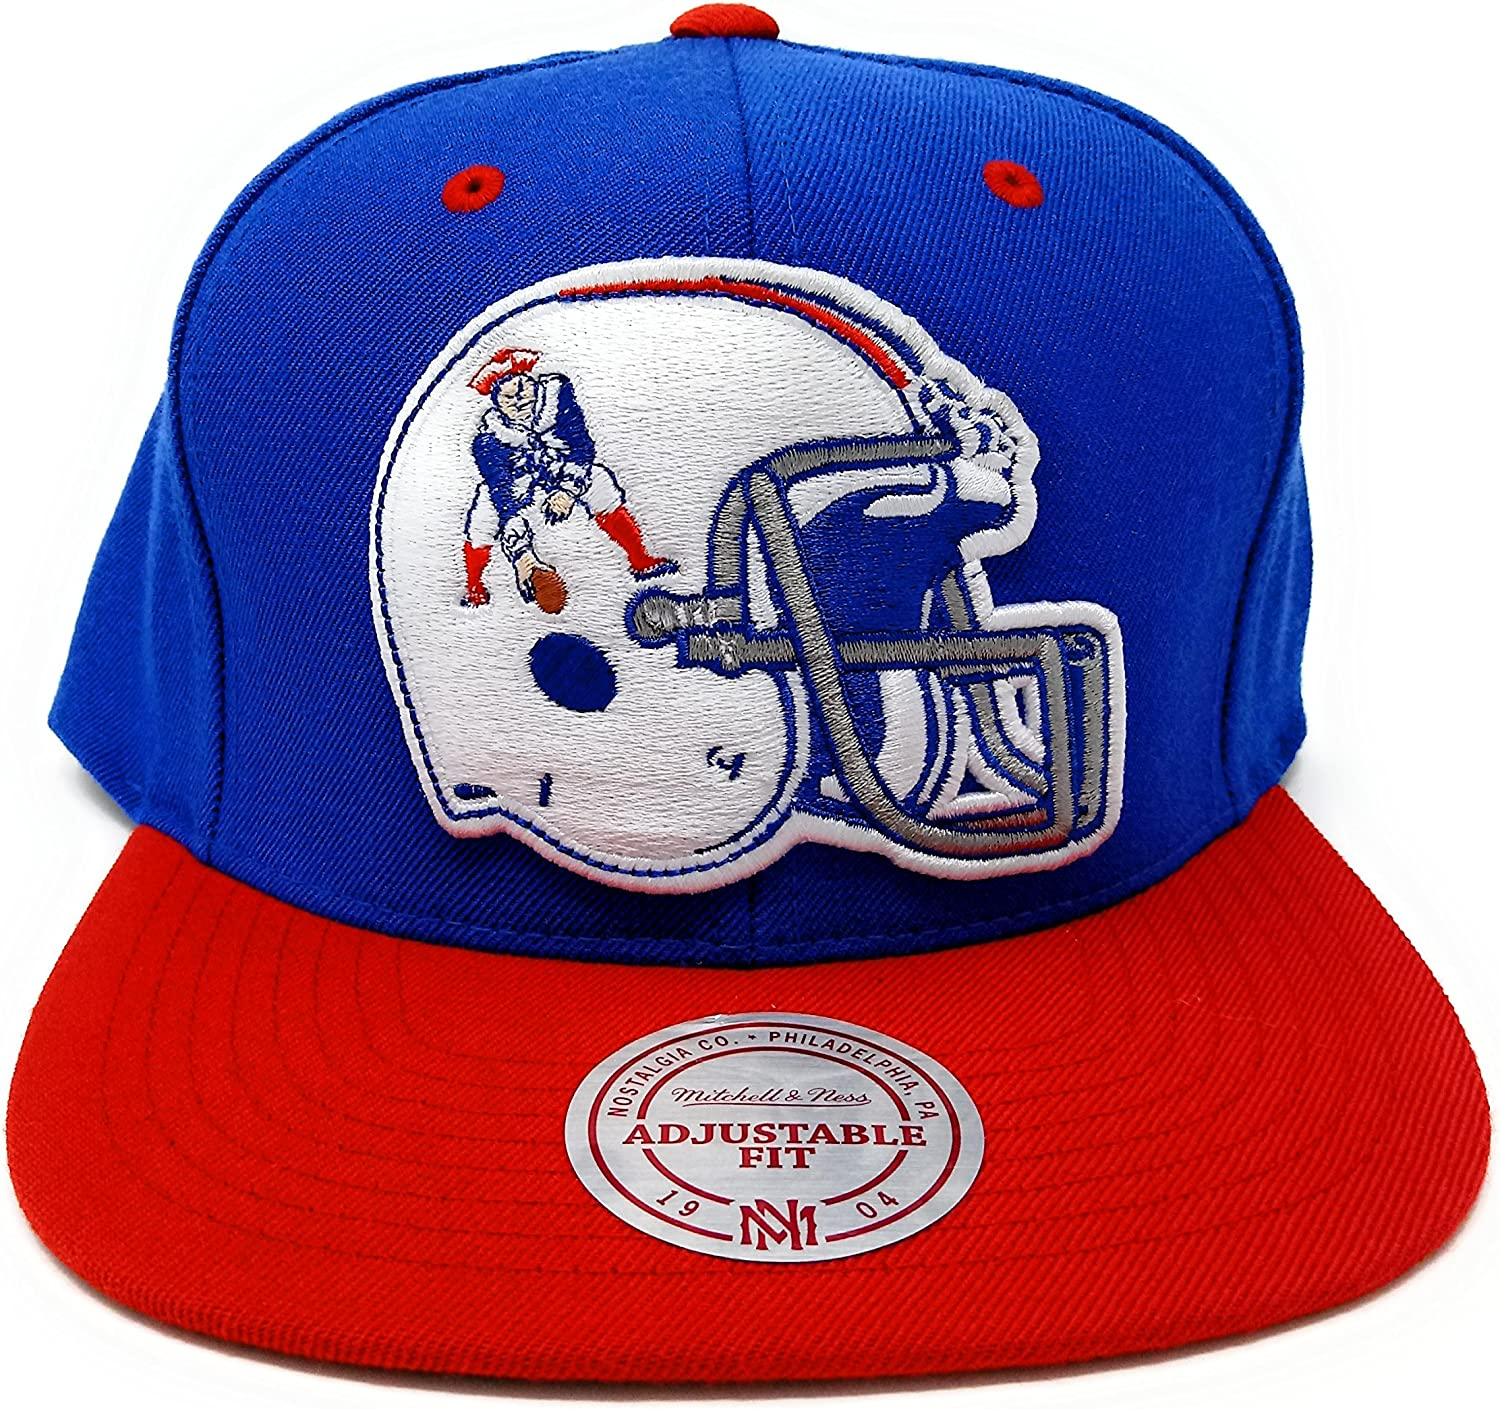 Mitchell And Ness New England Patriots Helmet Throwback Snapback At Amazon Women S Clothing Store